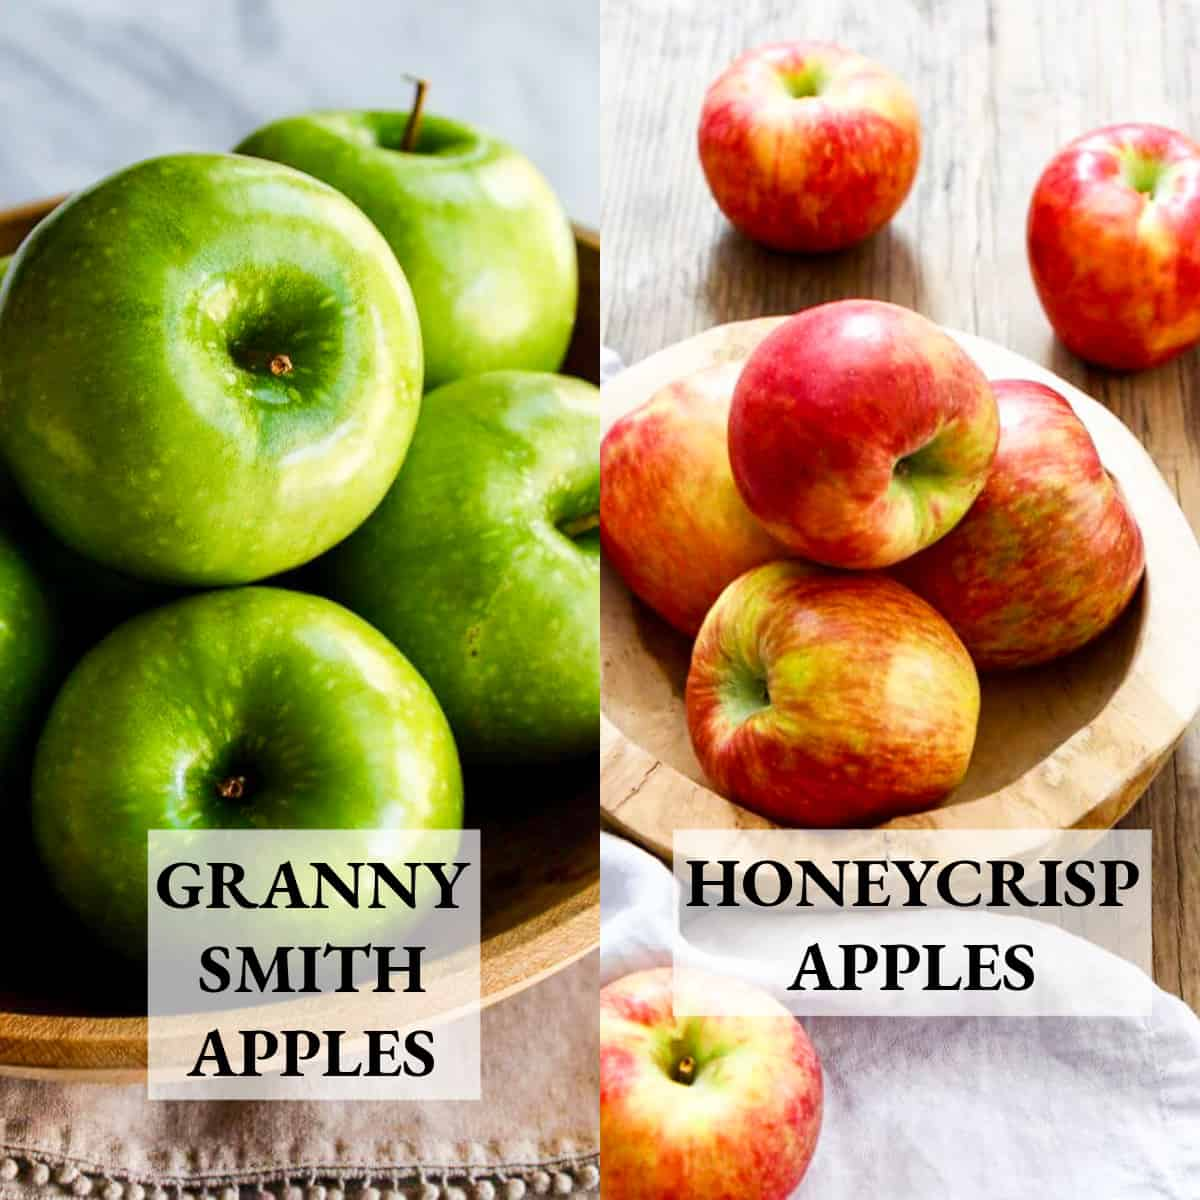 A graphic showing two kinds of apples, Granny Smith and Honeycrisp in wood bowls.